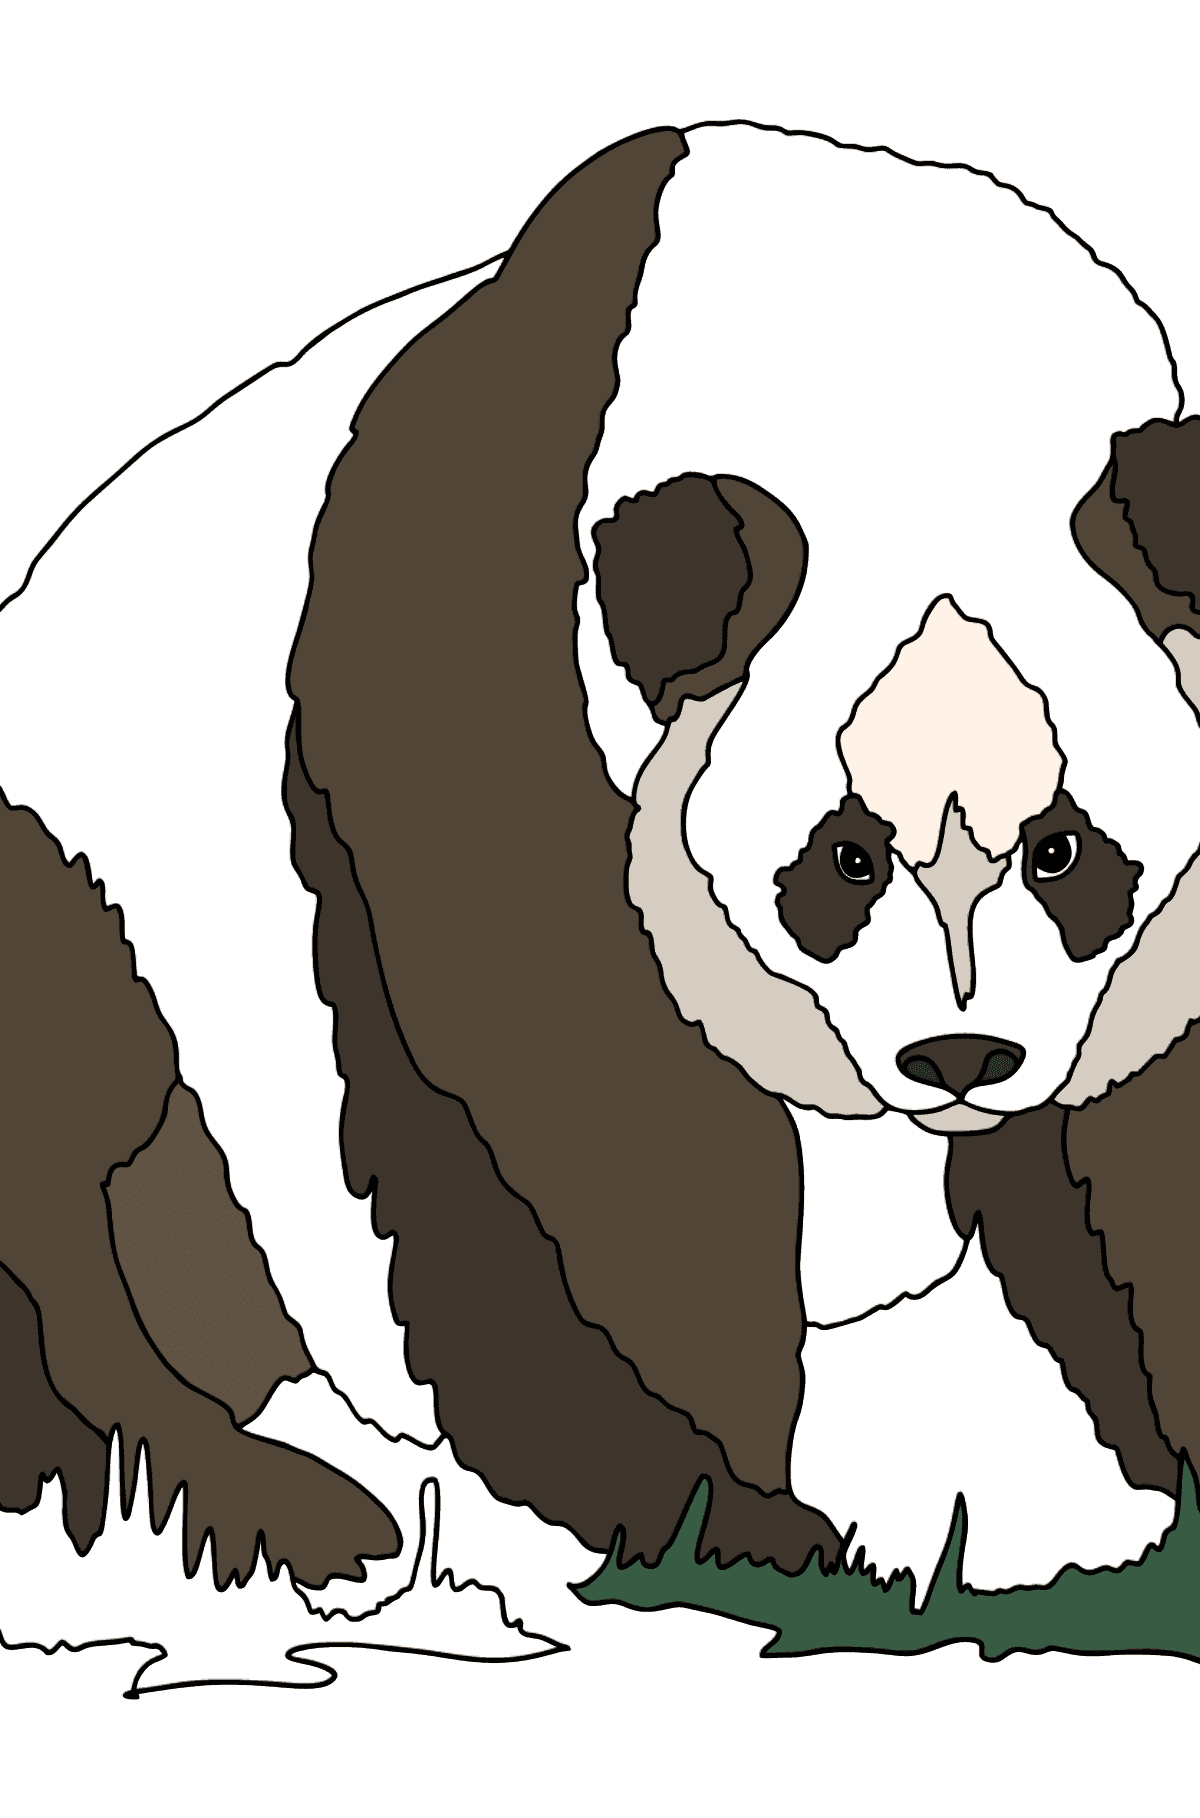 Coloring Page - A Panda is on a Hunt - Coloring Pages for Kids